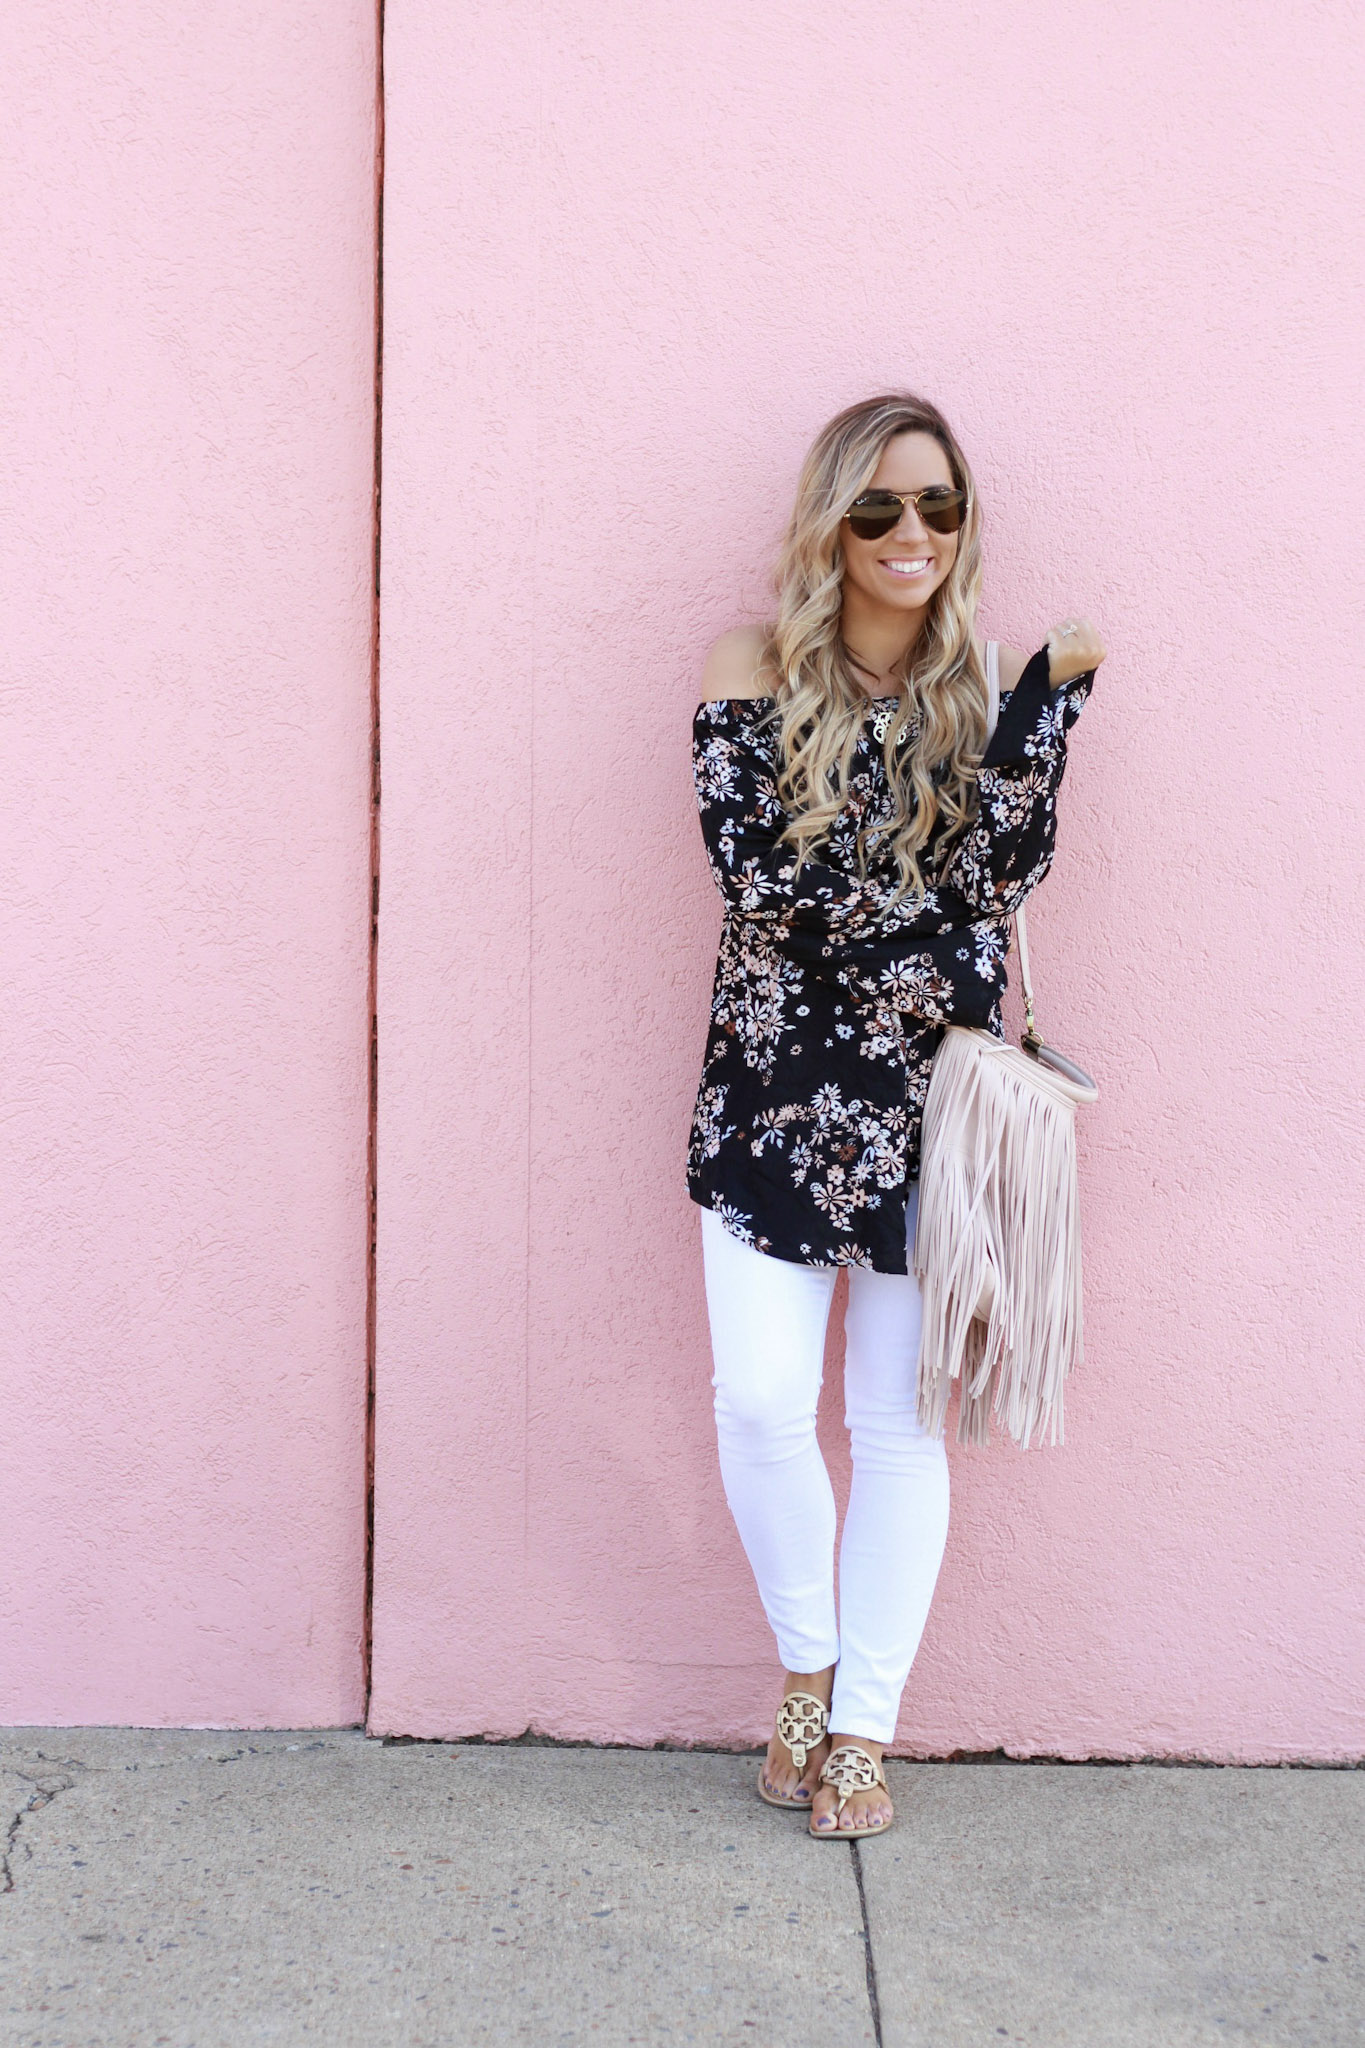 accordingtoblaire, according to blaire, floral ots top, nordstrom, fashion blogger, rva blogger, fringe bag, white skinny jeans, maternity jeans, off the shoulder top